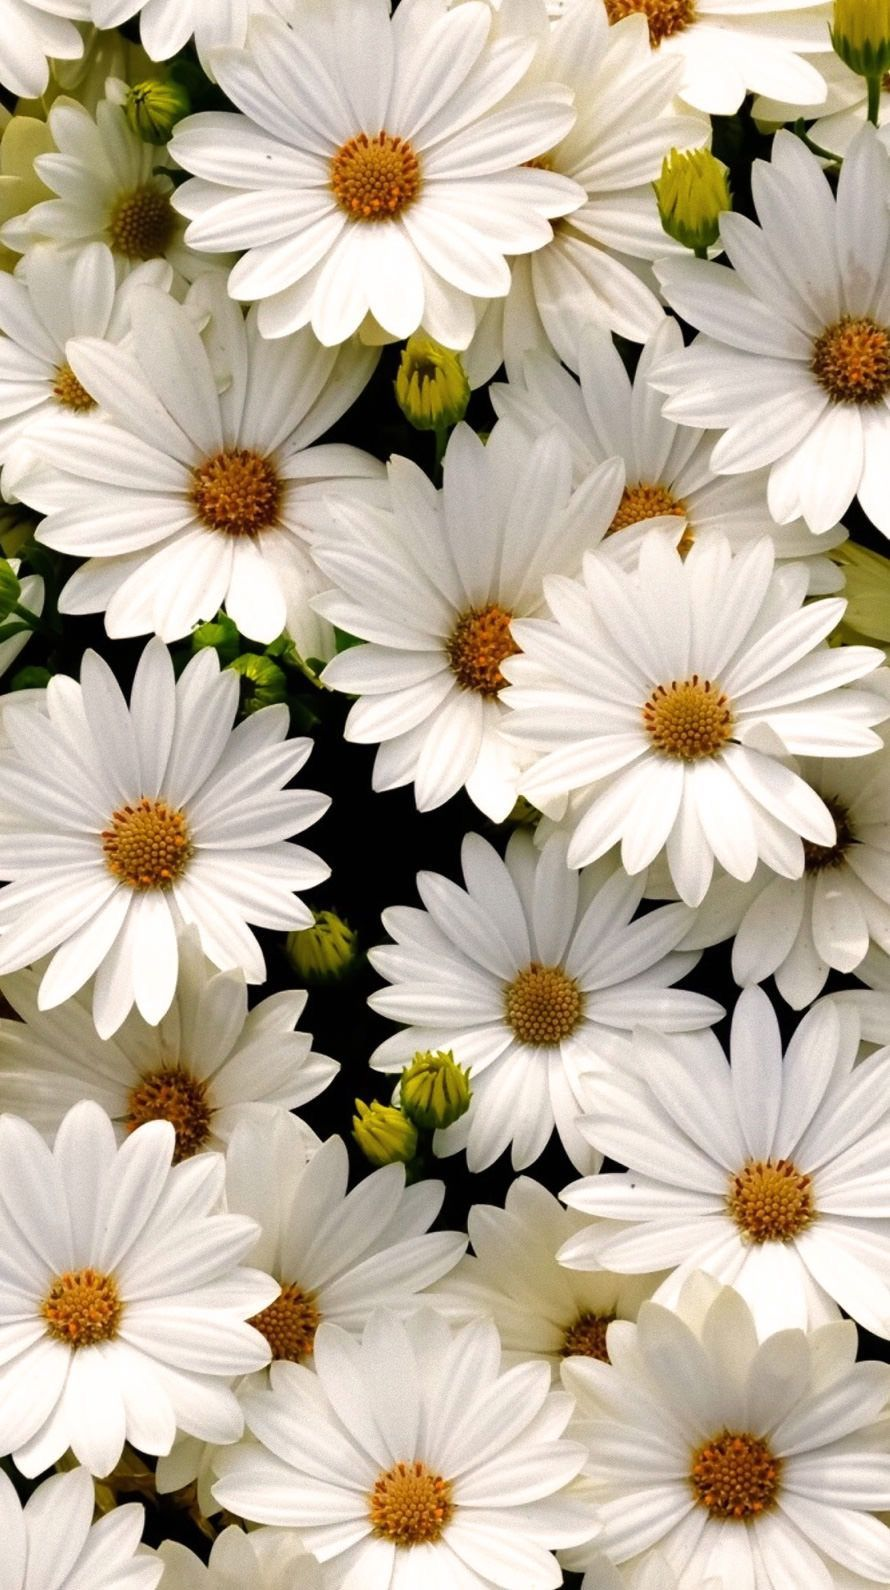 Daisy Aesthetic Wallpapers Top Free Daisy Aesthetic Backgrounds